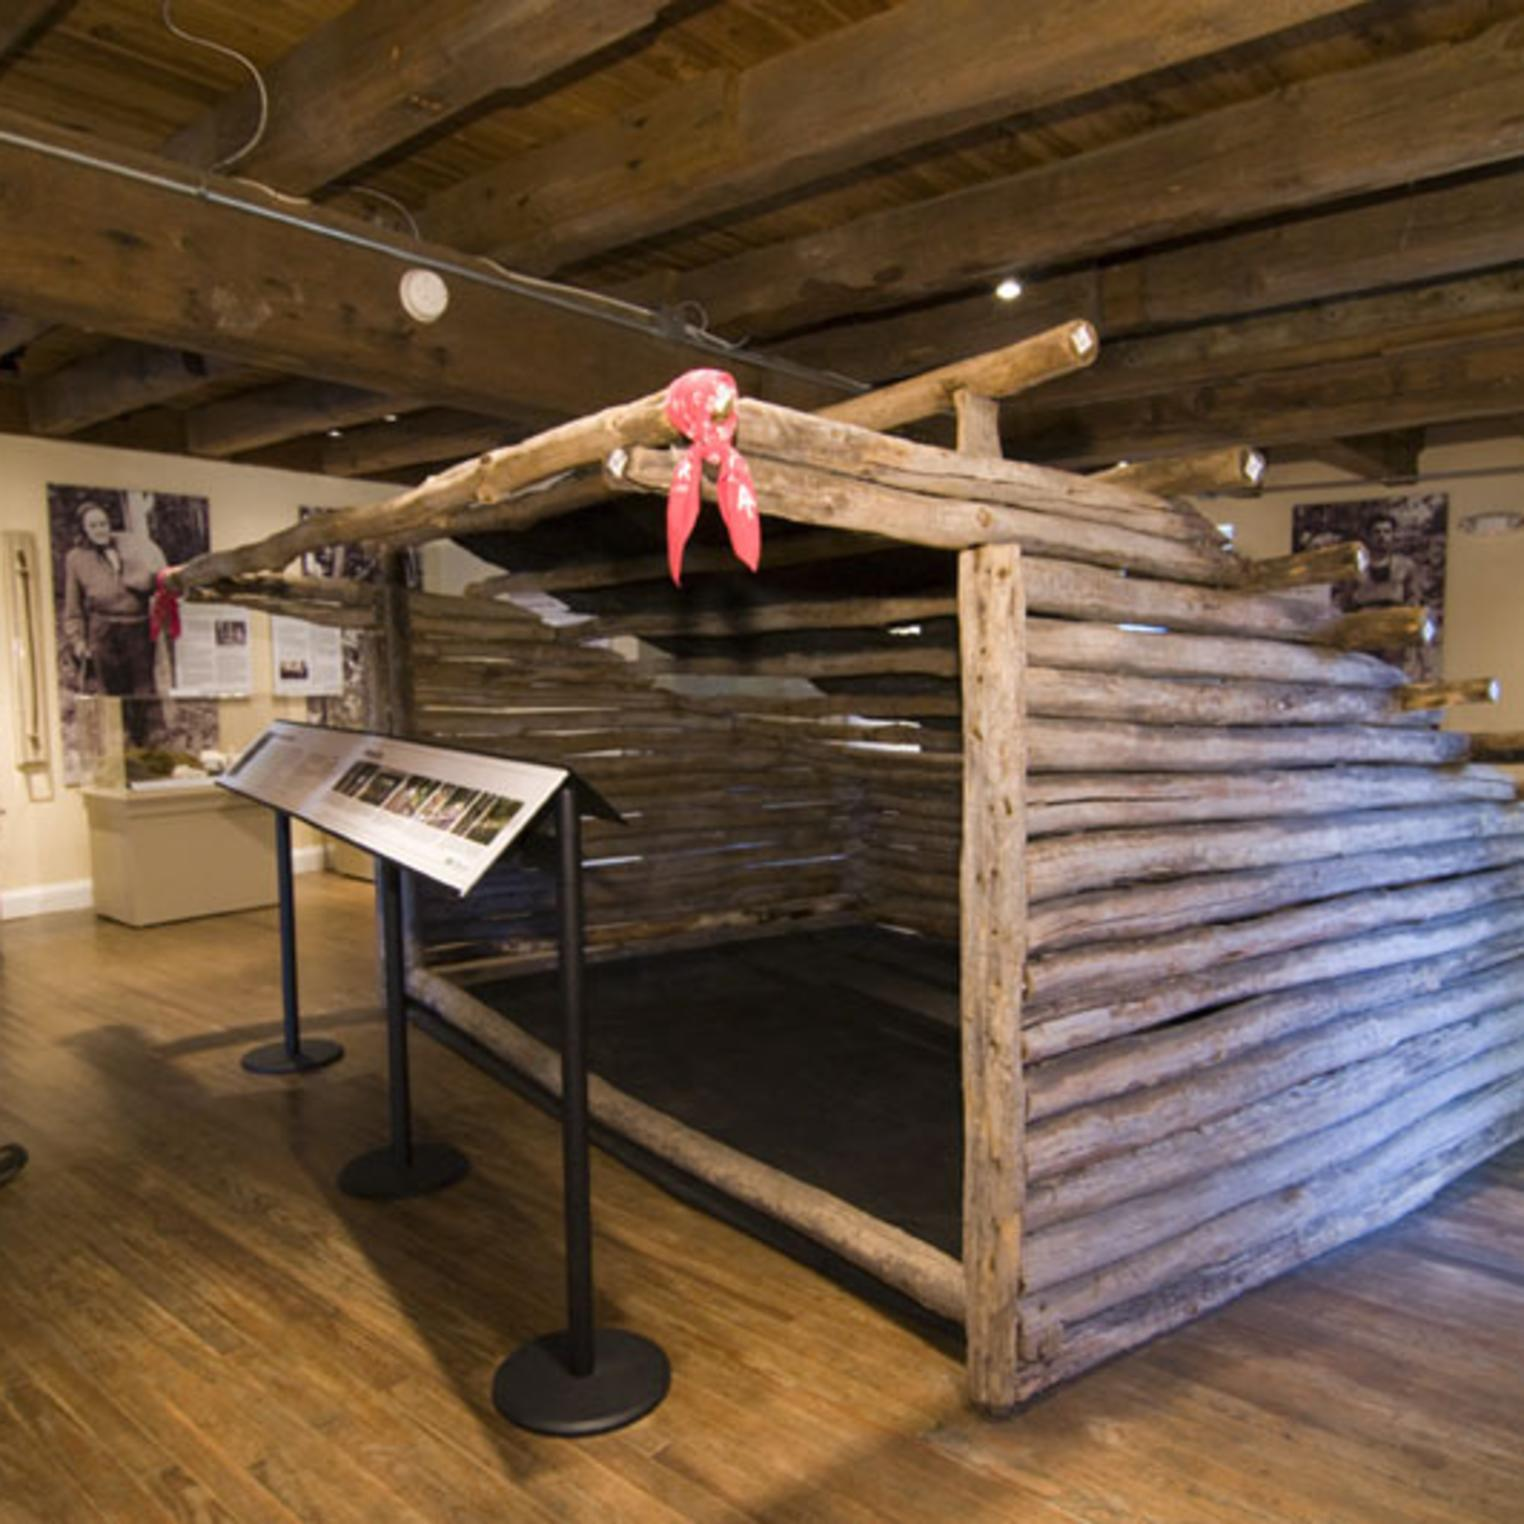 The Earl Shaffer shelter at the Appalachian Trail Museum